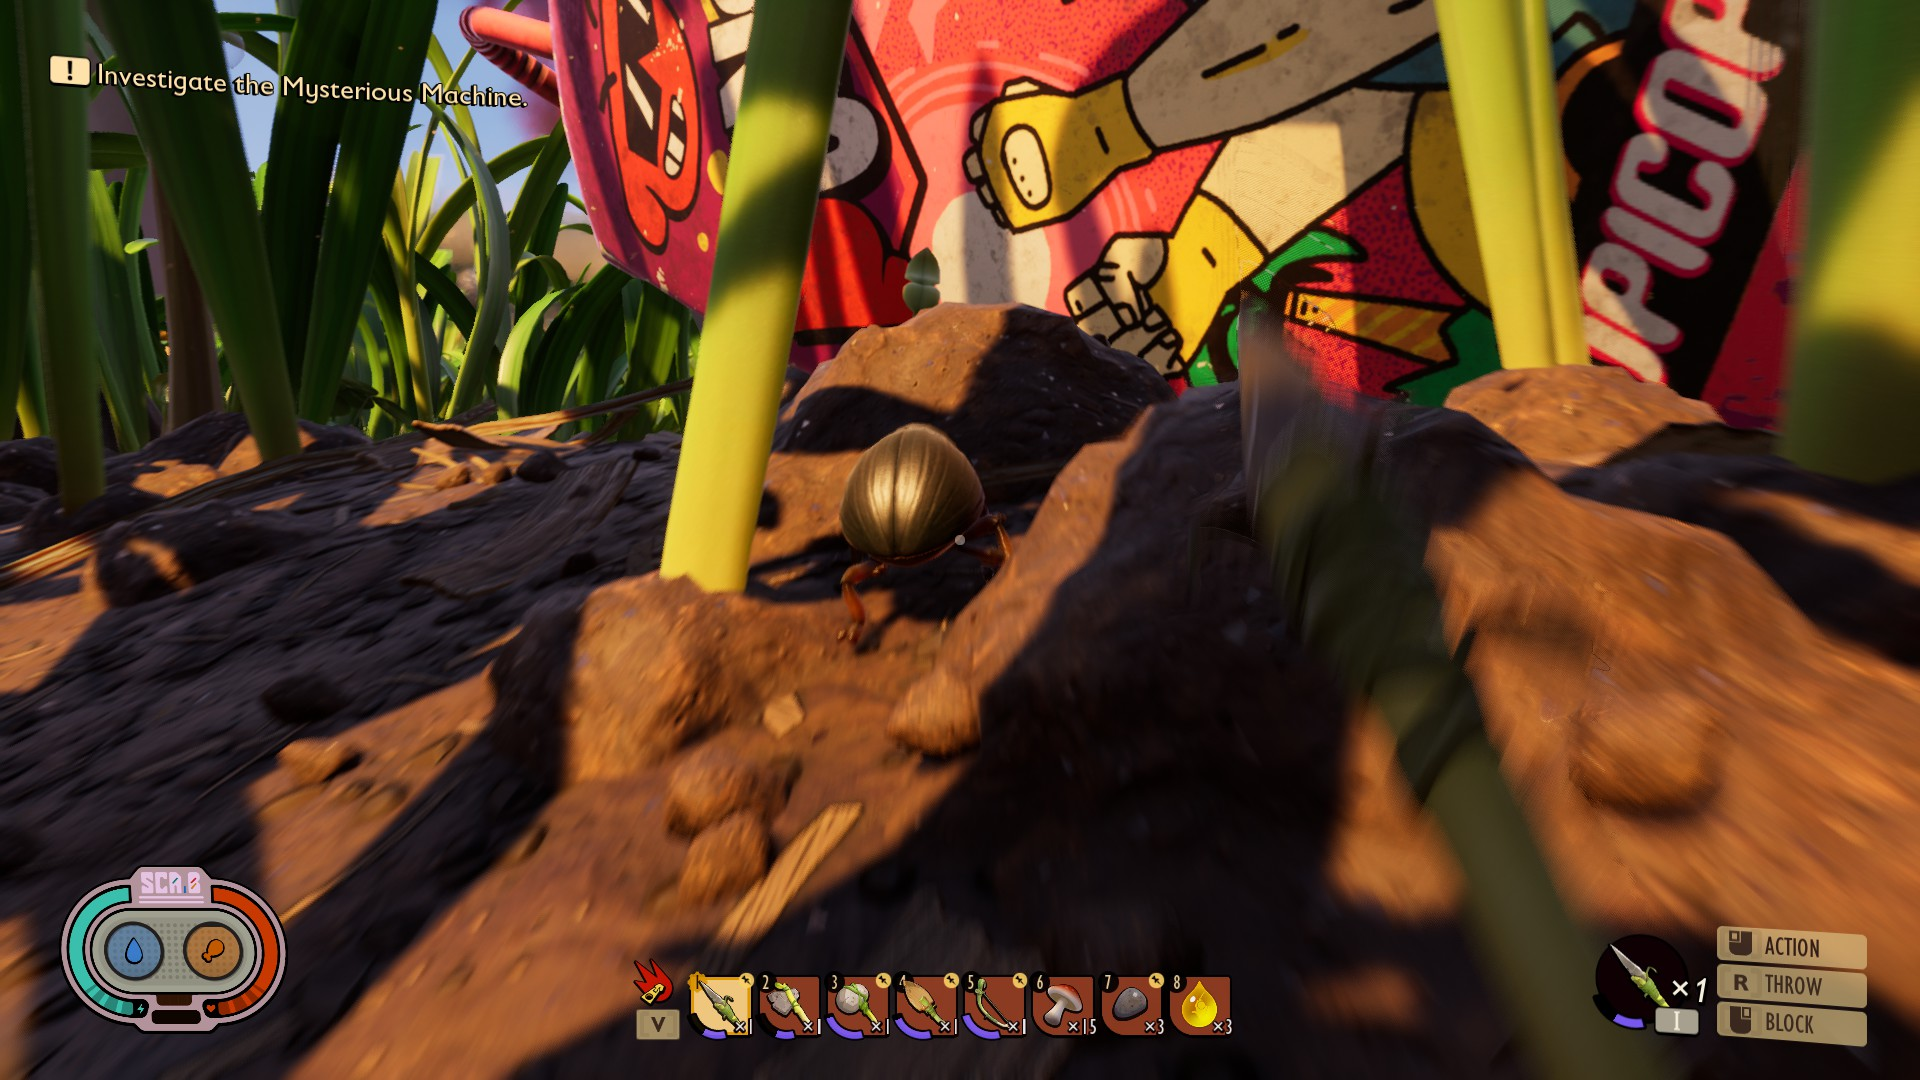 First person view of a player running after a weevil, brandhising a spear. A large colourful carton of juice is just ahead.